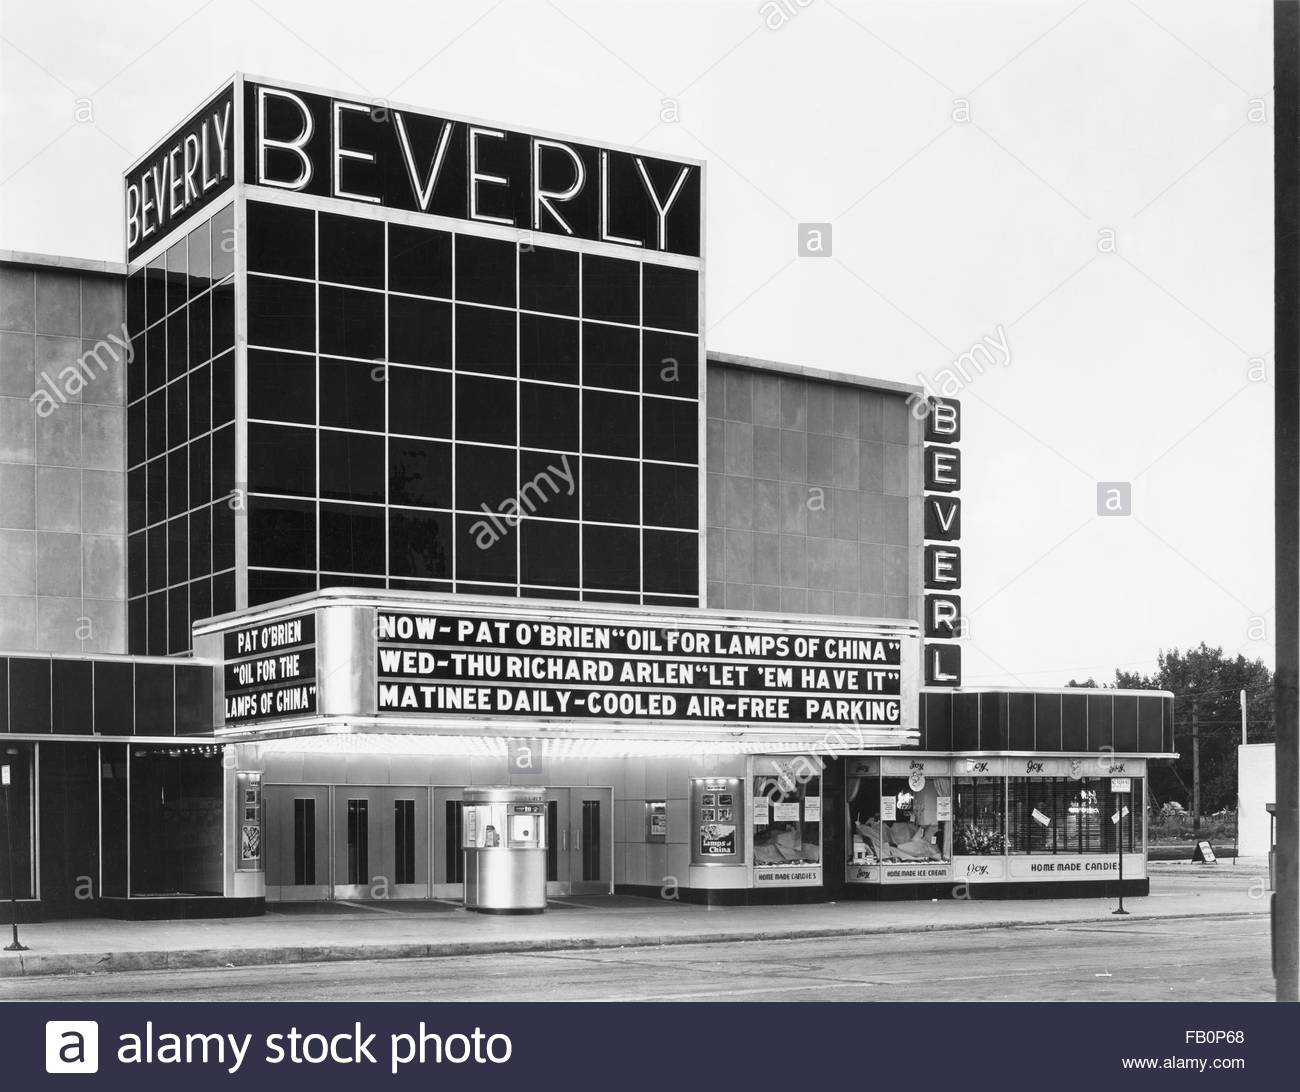 Beverly Theater and other Chicago views, 1935 Aug. 15. - Stock Image